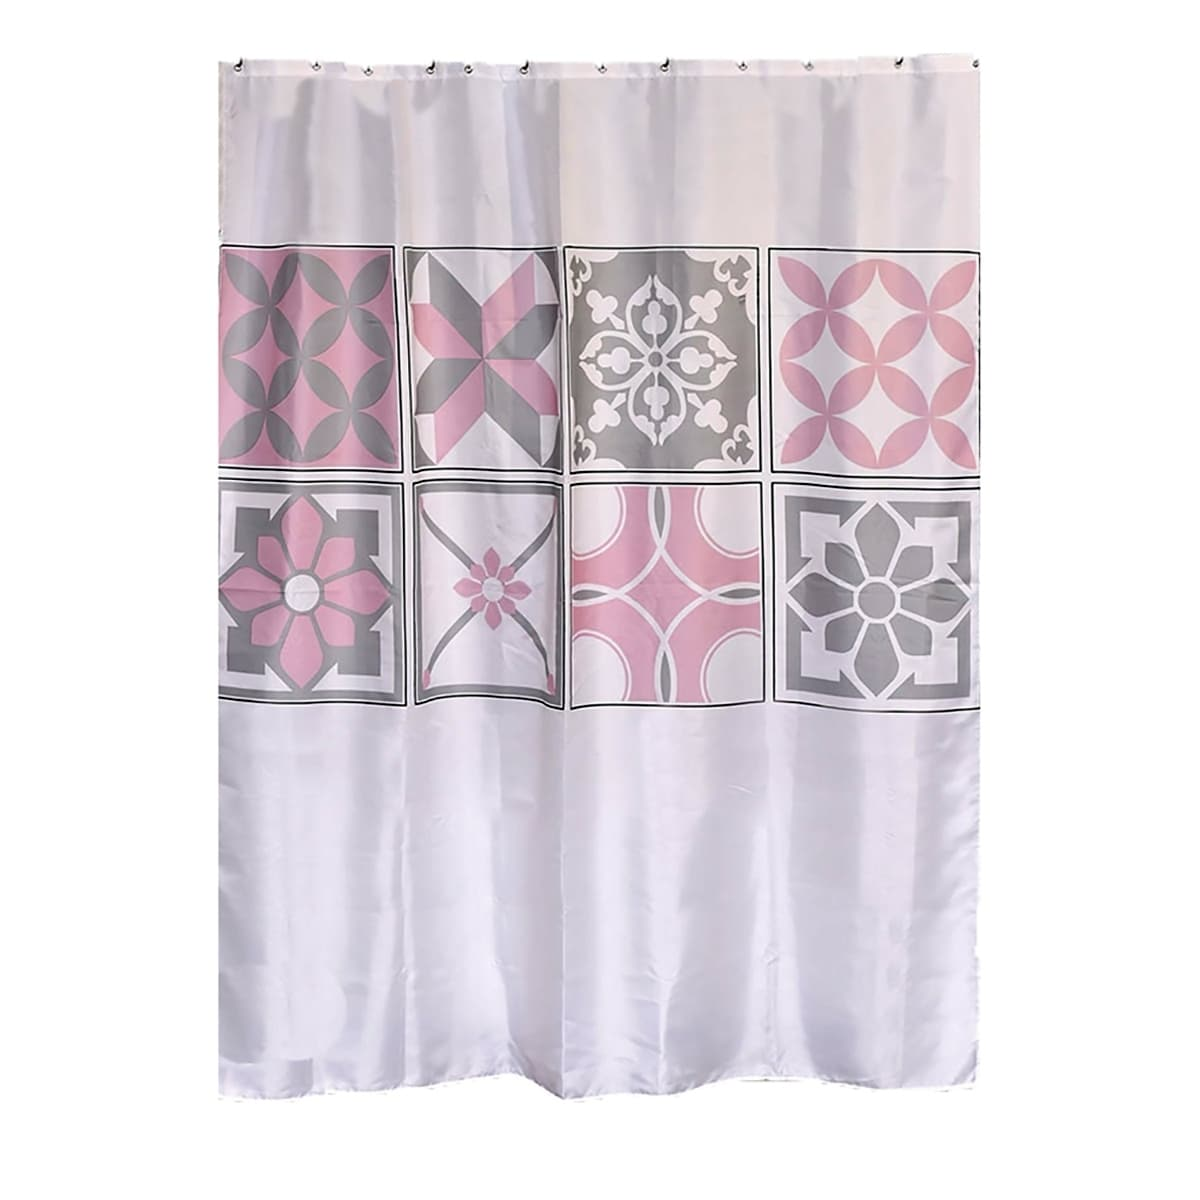 Bastide Printed Polyester Fabric Shower Curtain White Pink Grey